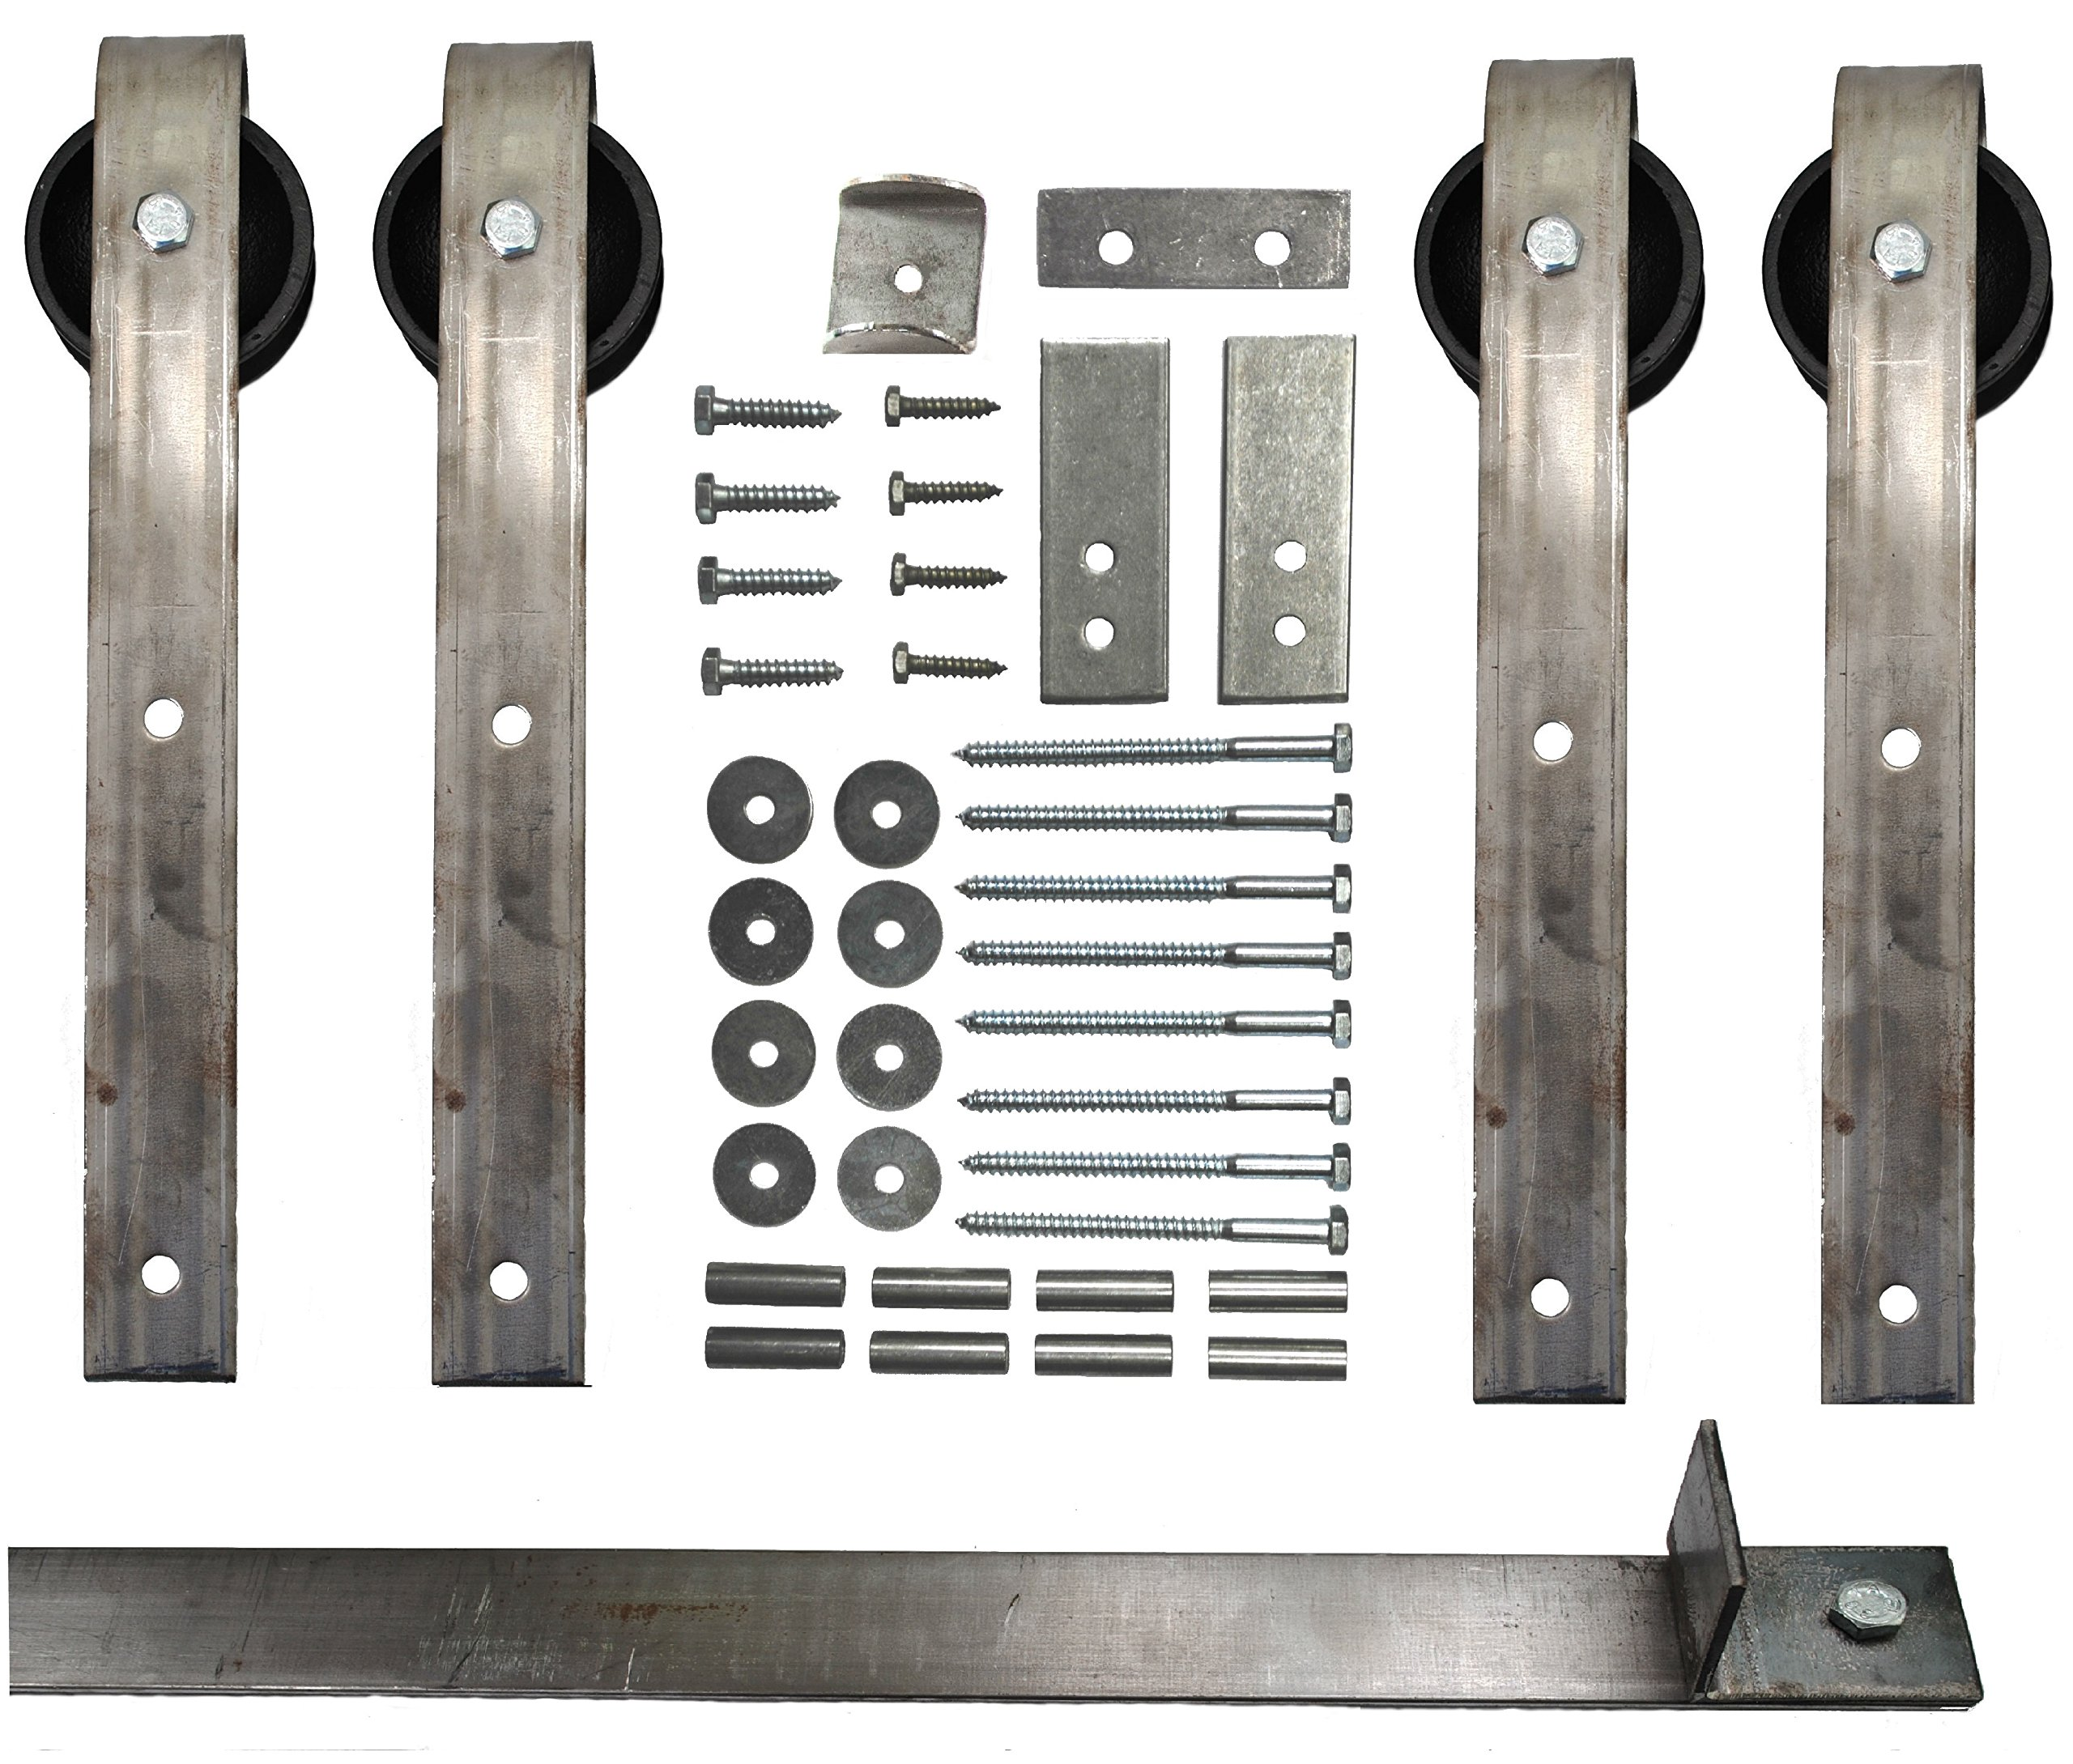 Double Sliding Barn Door Hardware Kit with 9 Ft. Track Included - Made in USA by Mapp Caster